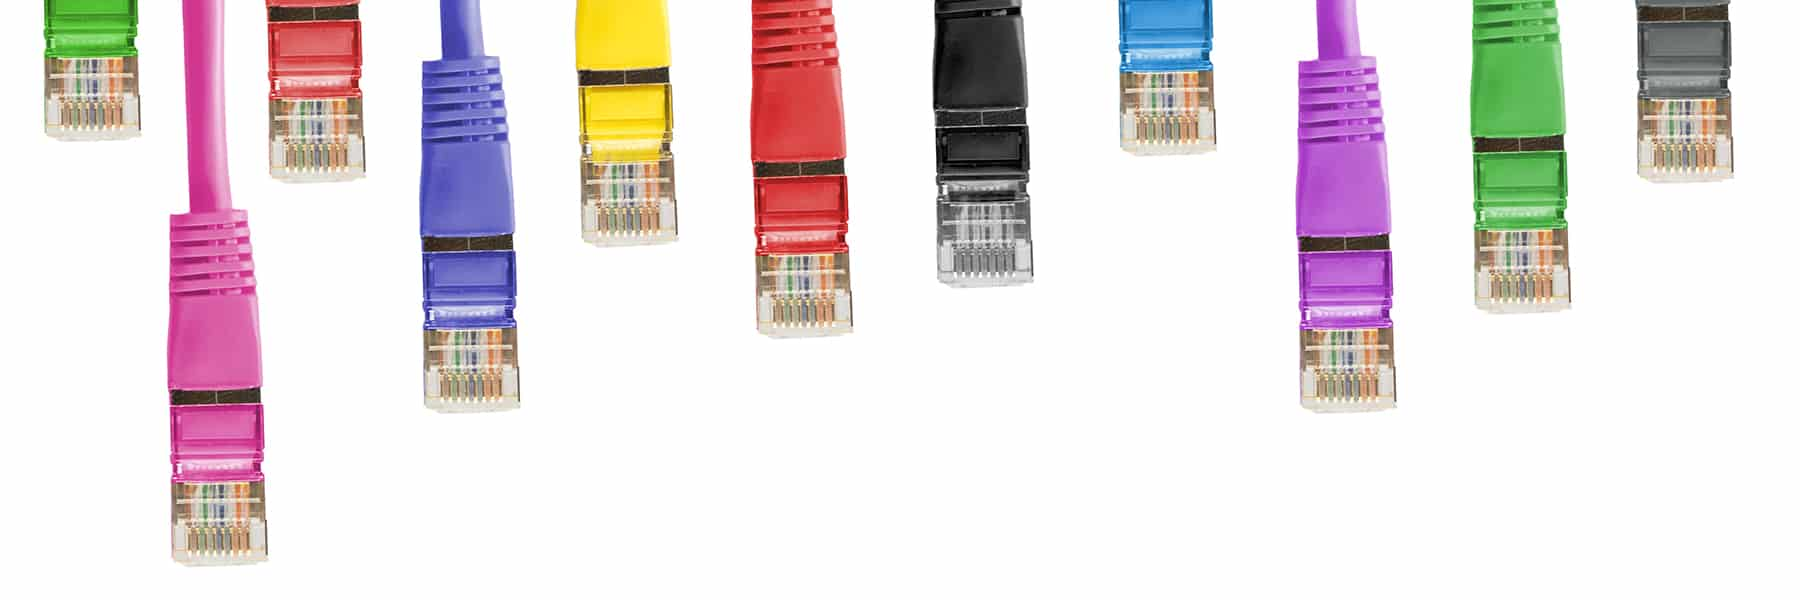 network-cables-494648